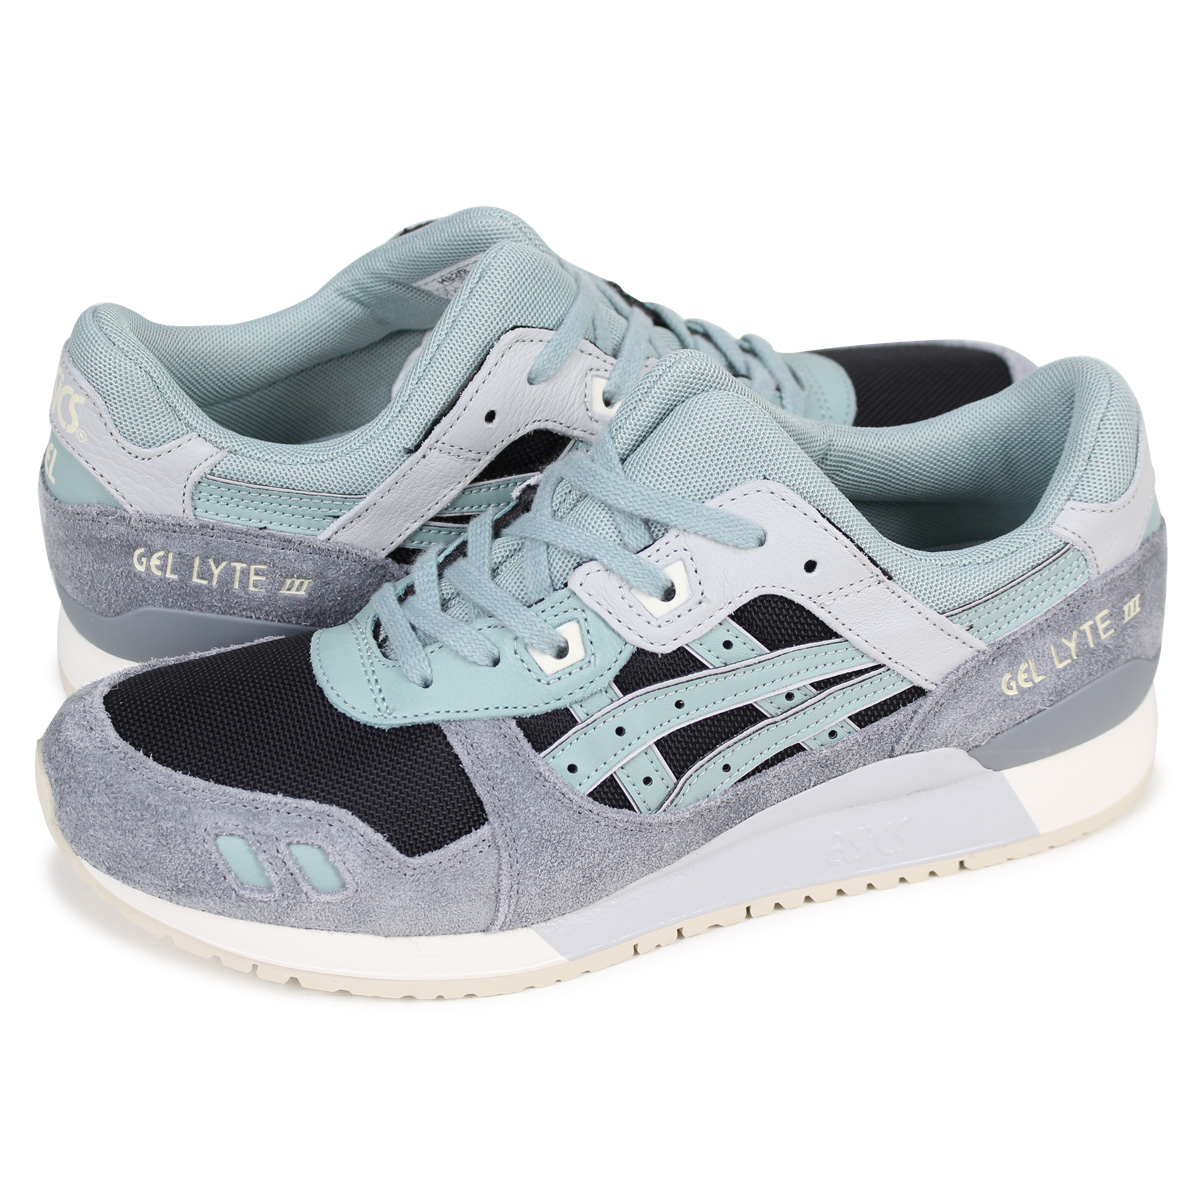 asics get light 3